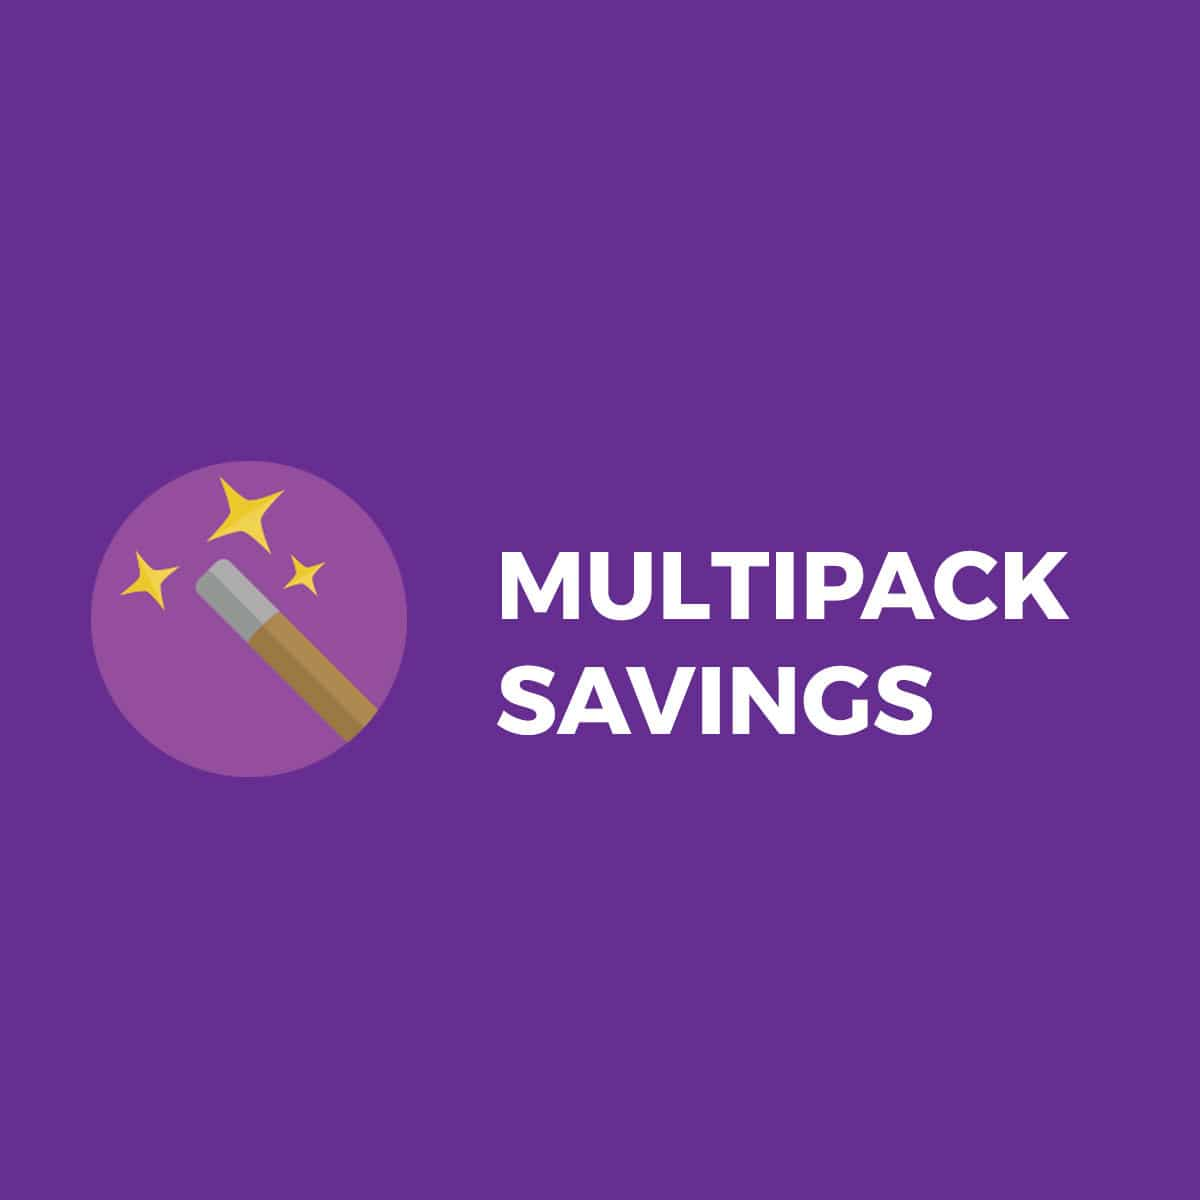 Multipack/Bulk Savings